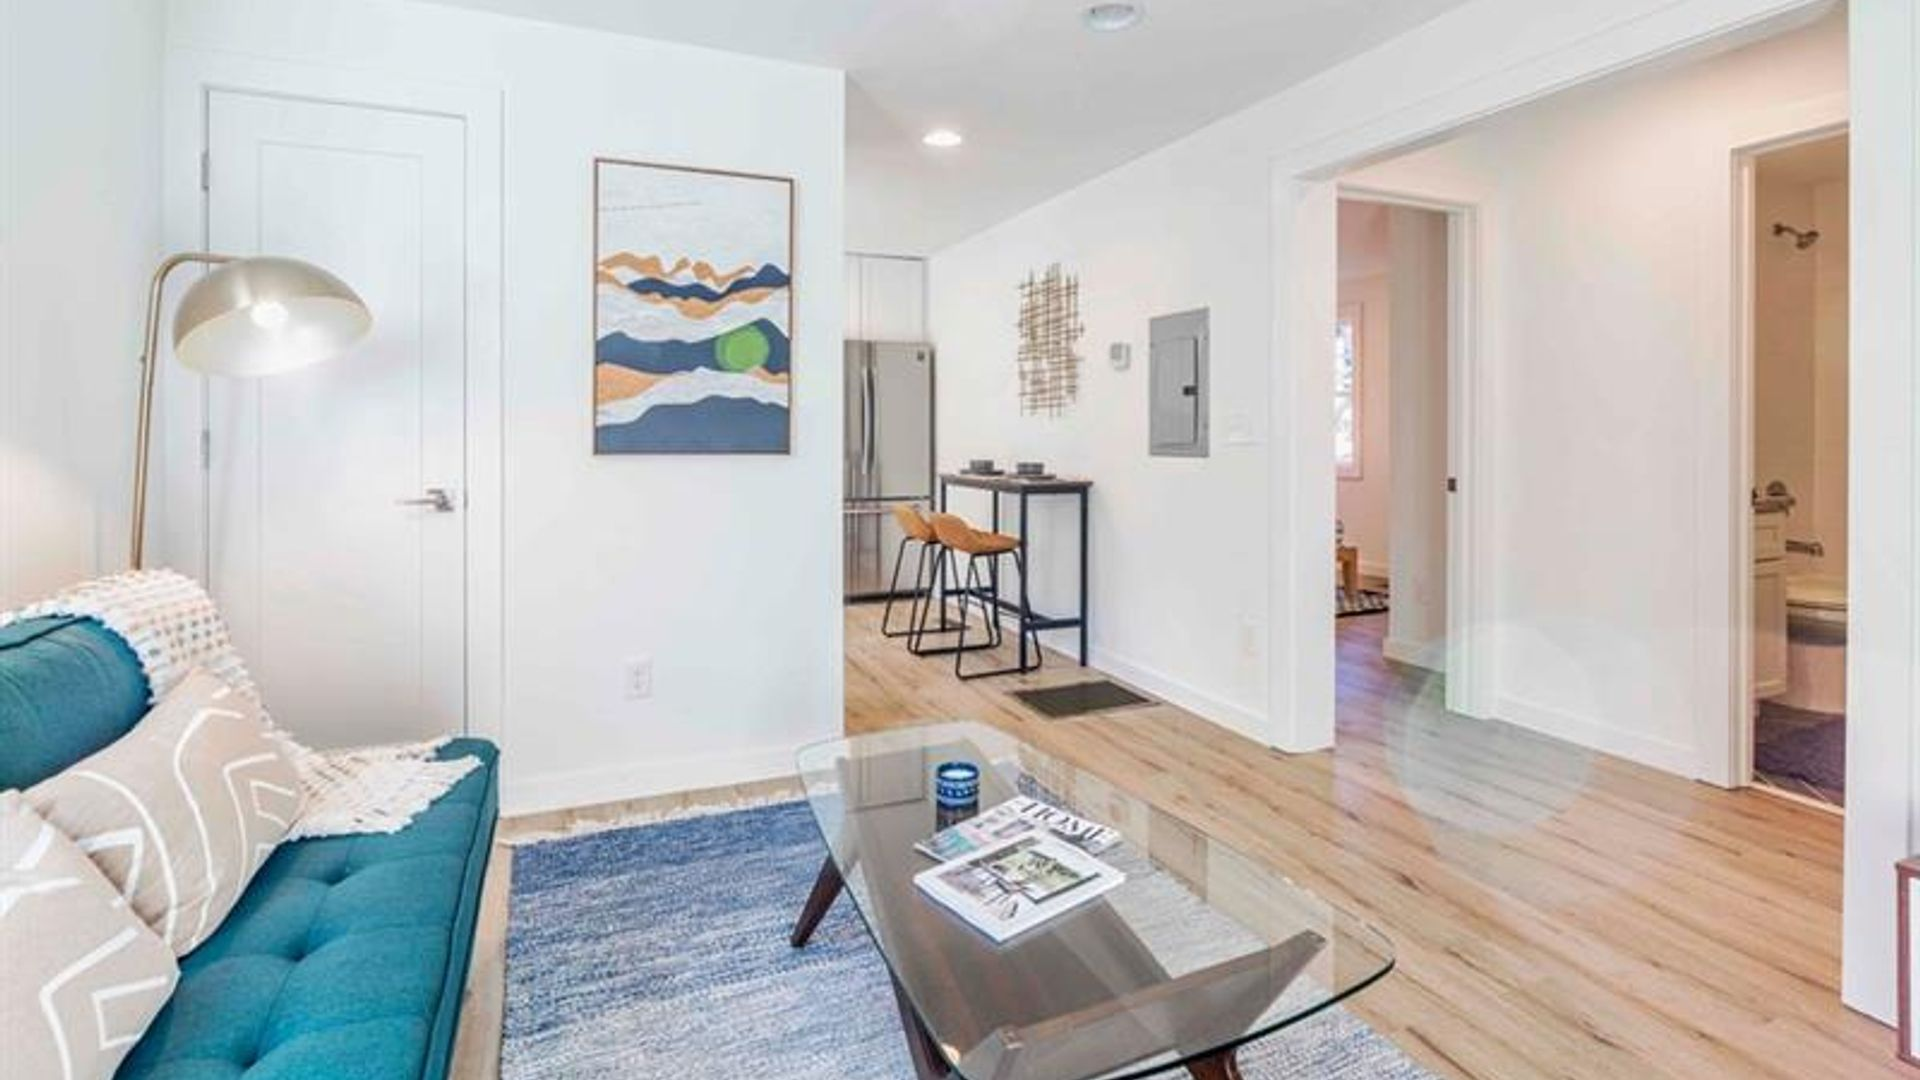 1bed apartment at 1015 greenwood avenue northeast